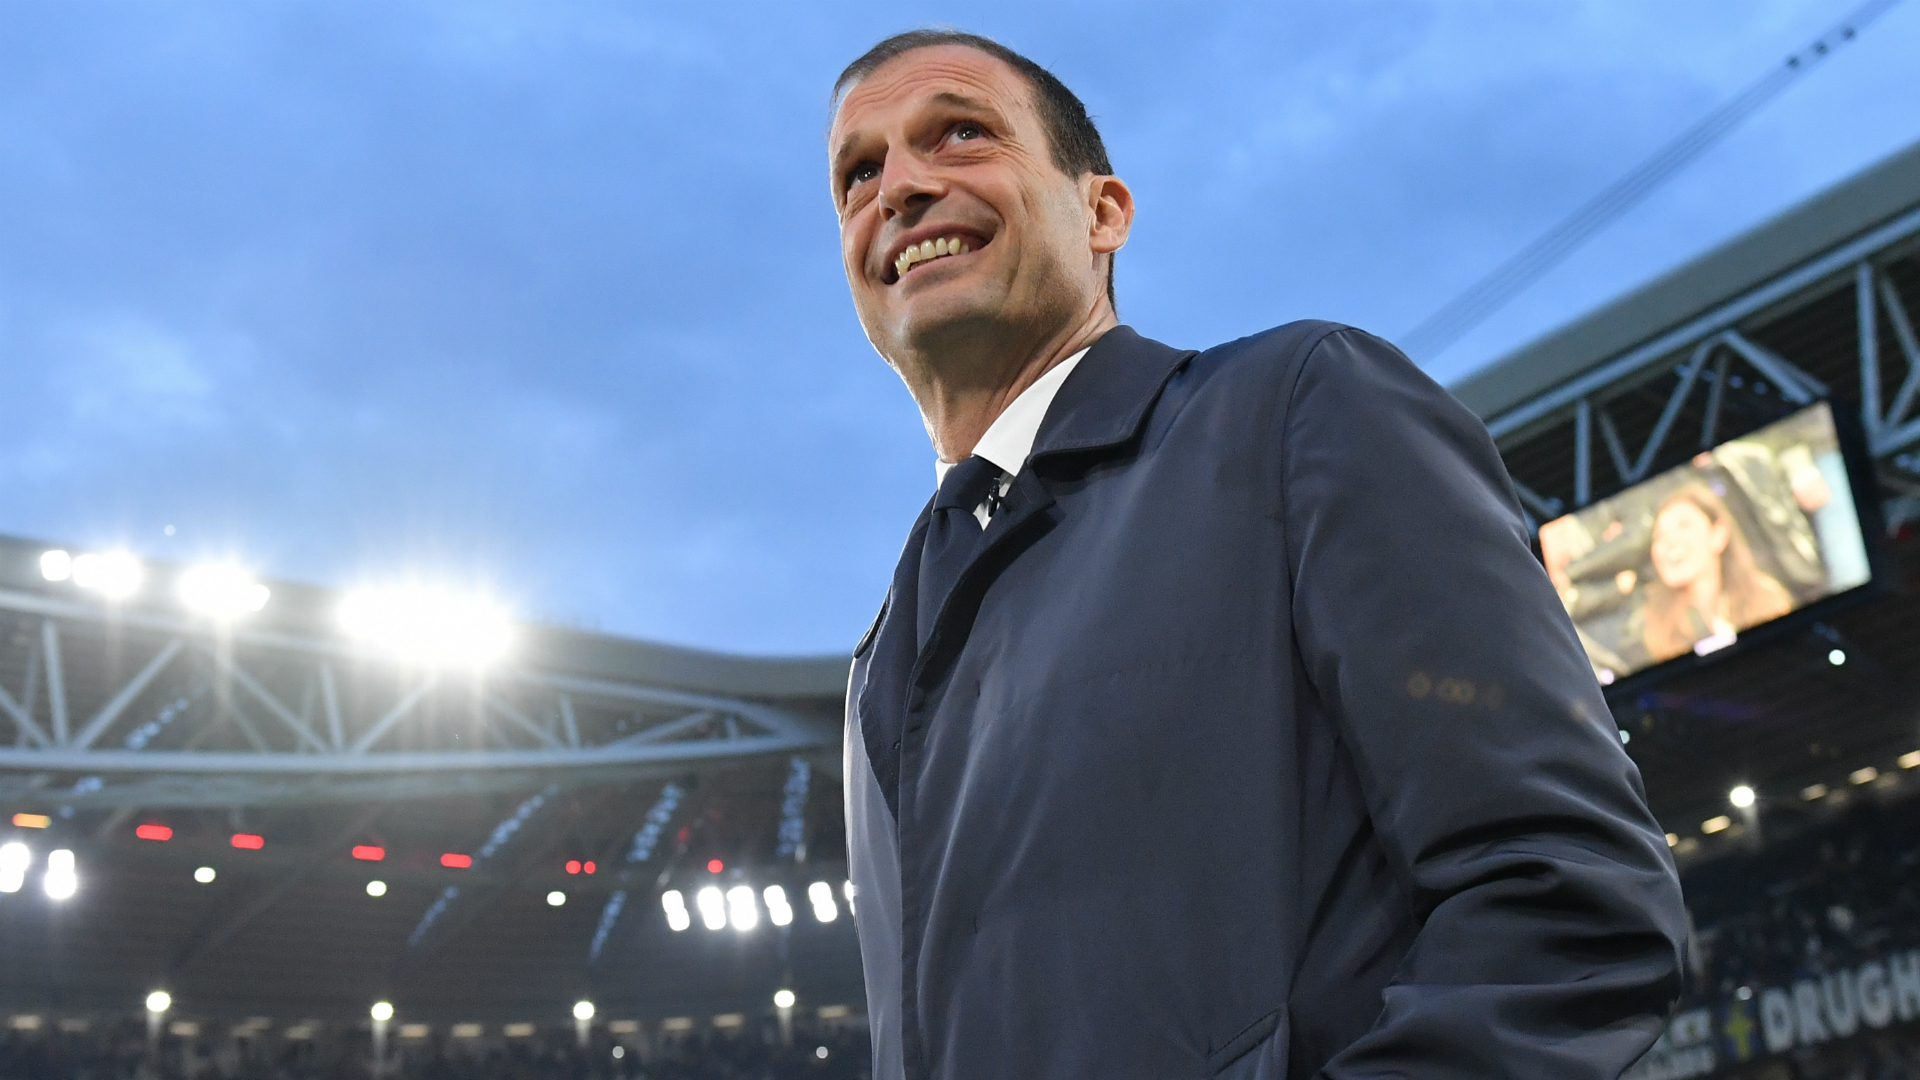 Allegri would like to experience 'sophisticated' Premier League